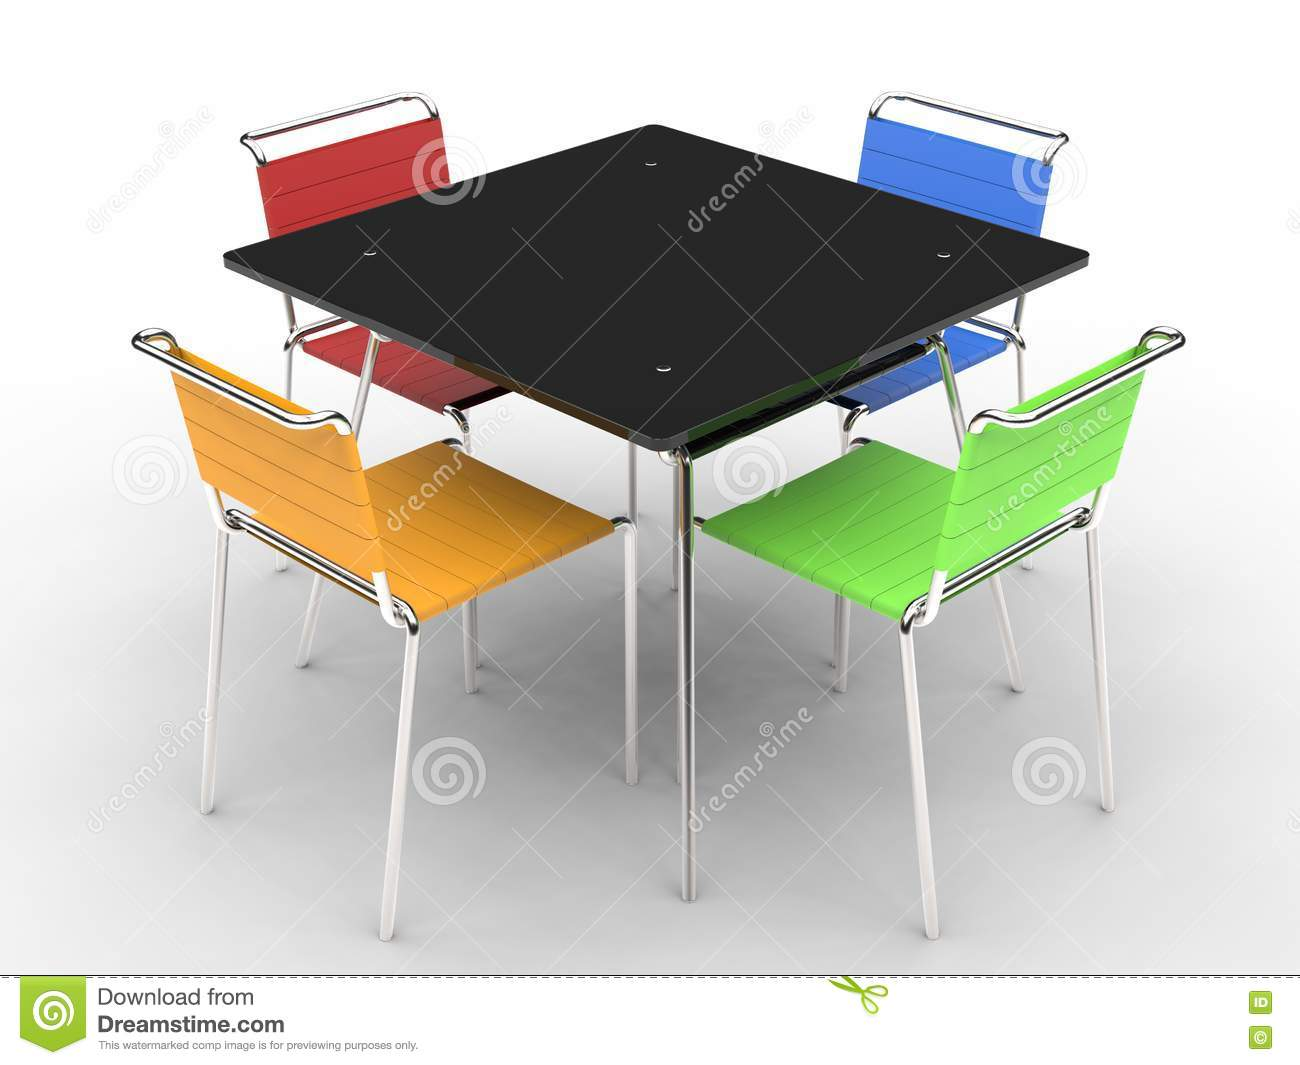 petite table de salle manger noire avec les chaises color es photo stock image du noir. Black Bedroom Furniture Sets. Home Design Ideas